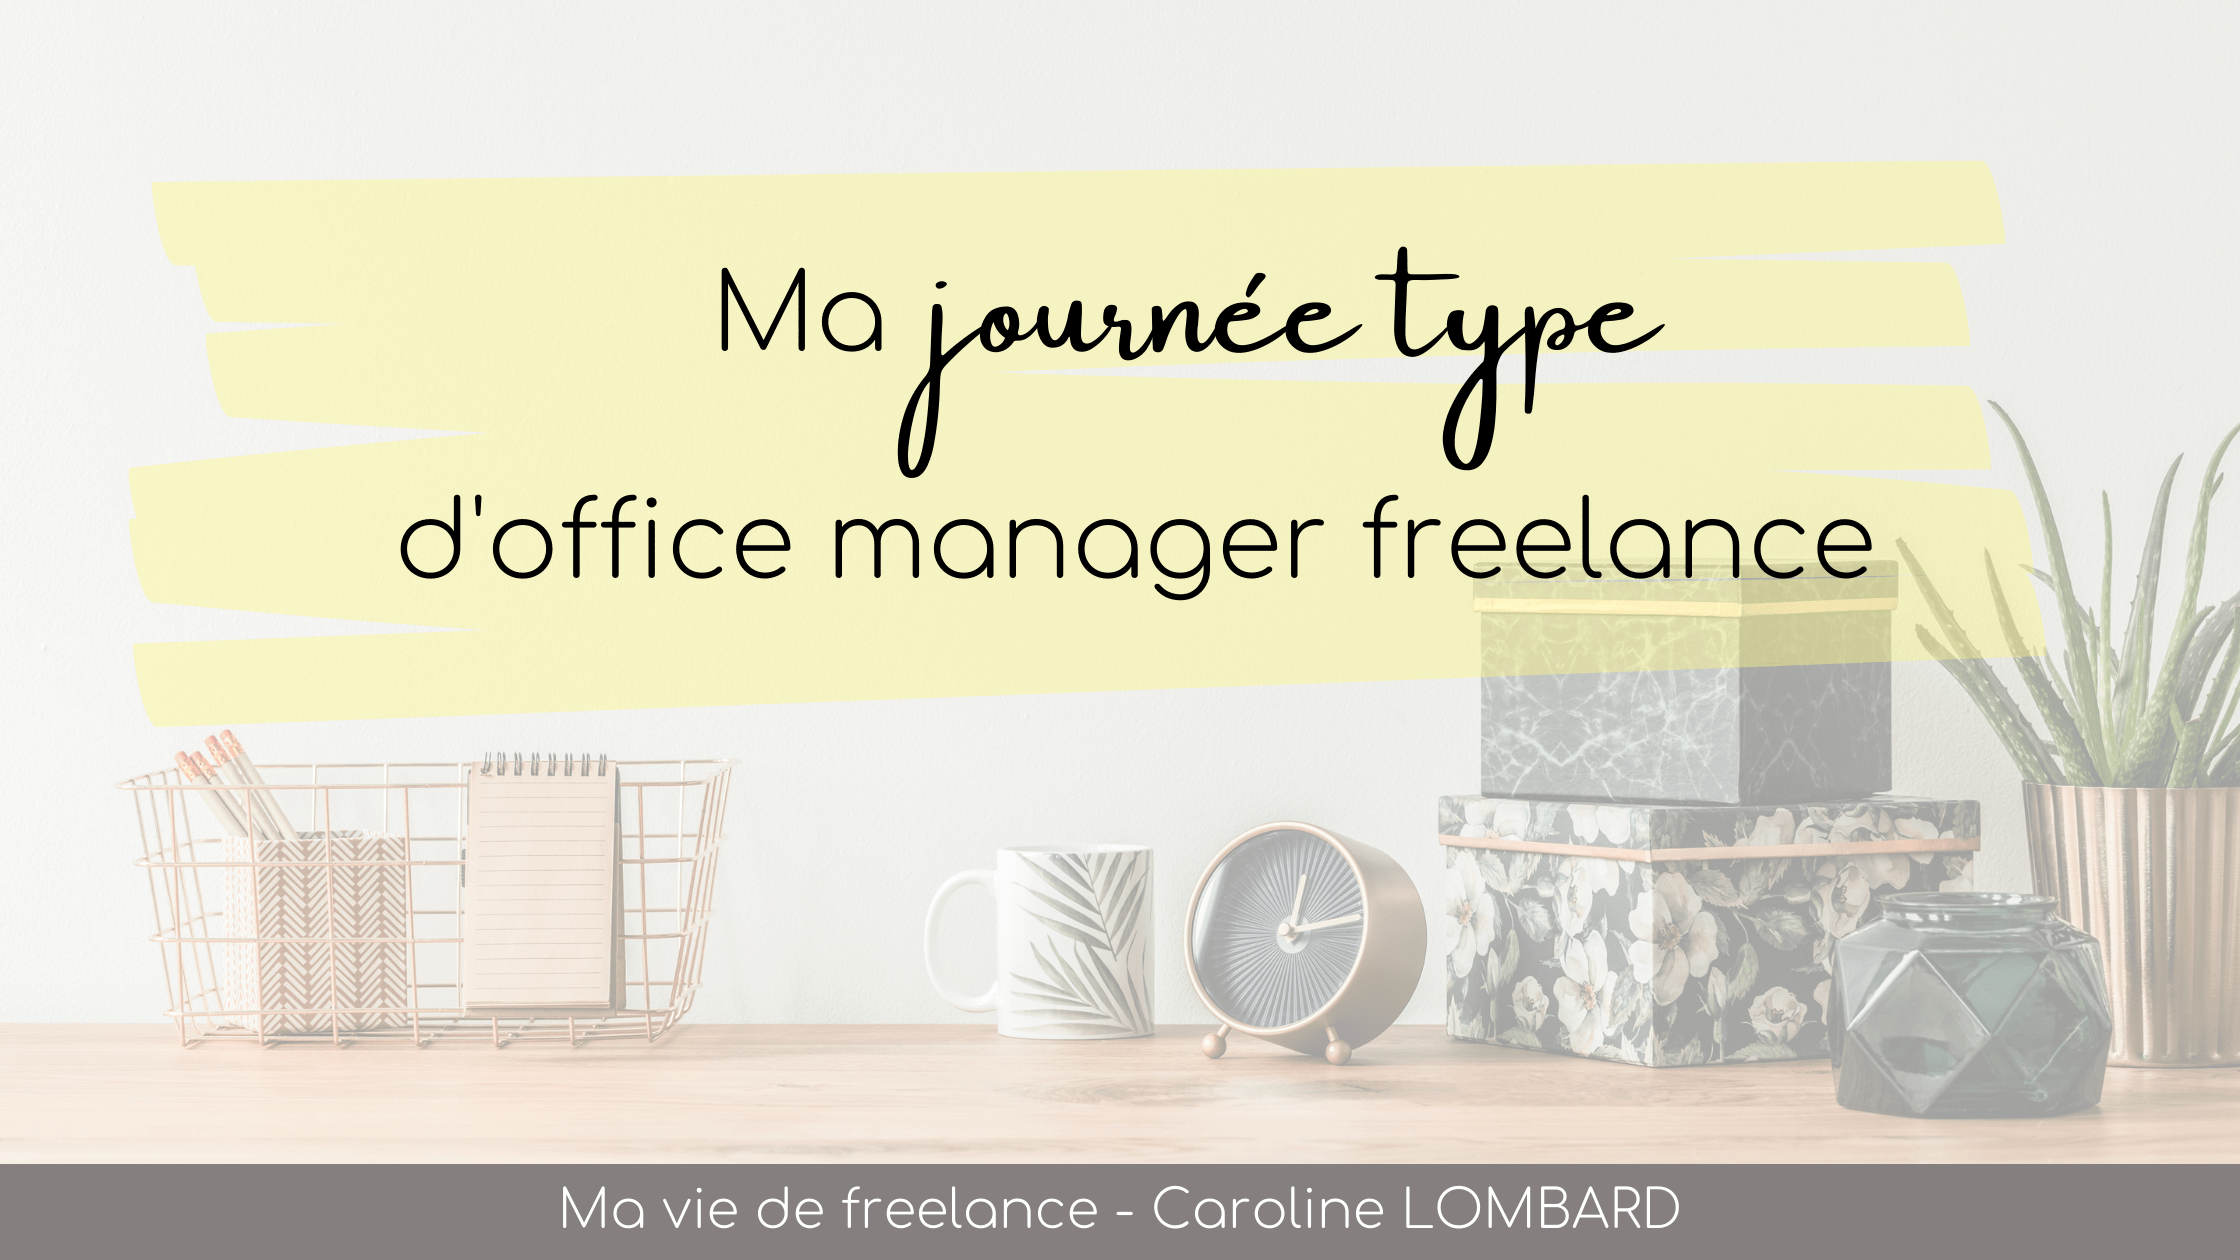 ma journée type d'office manager